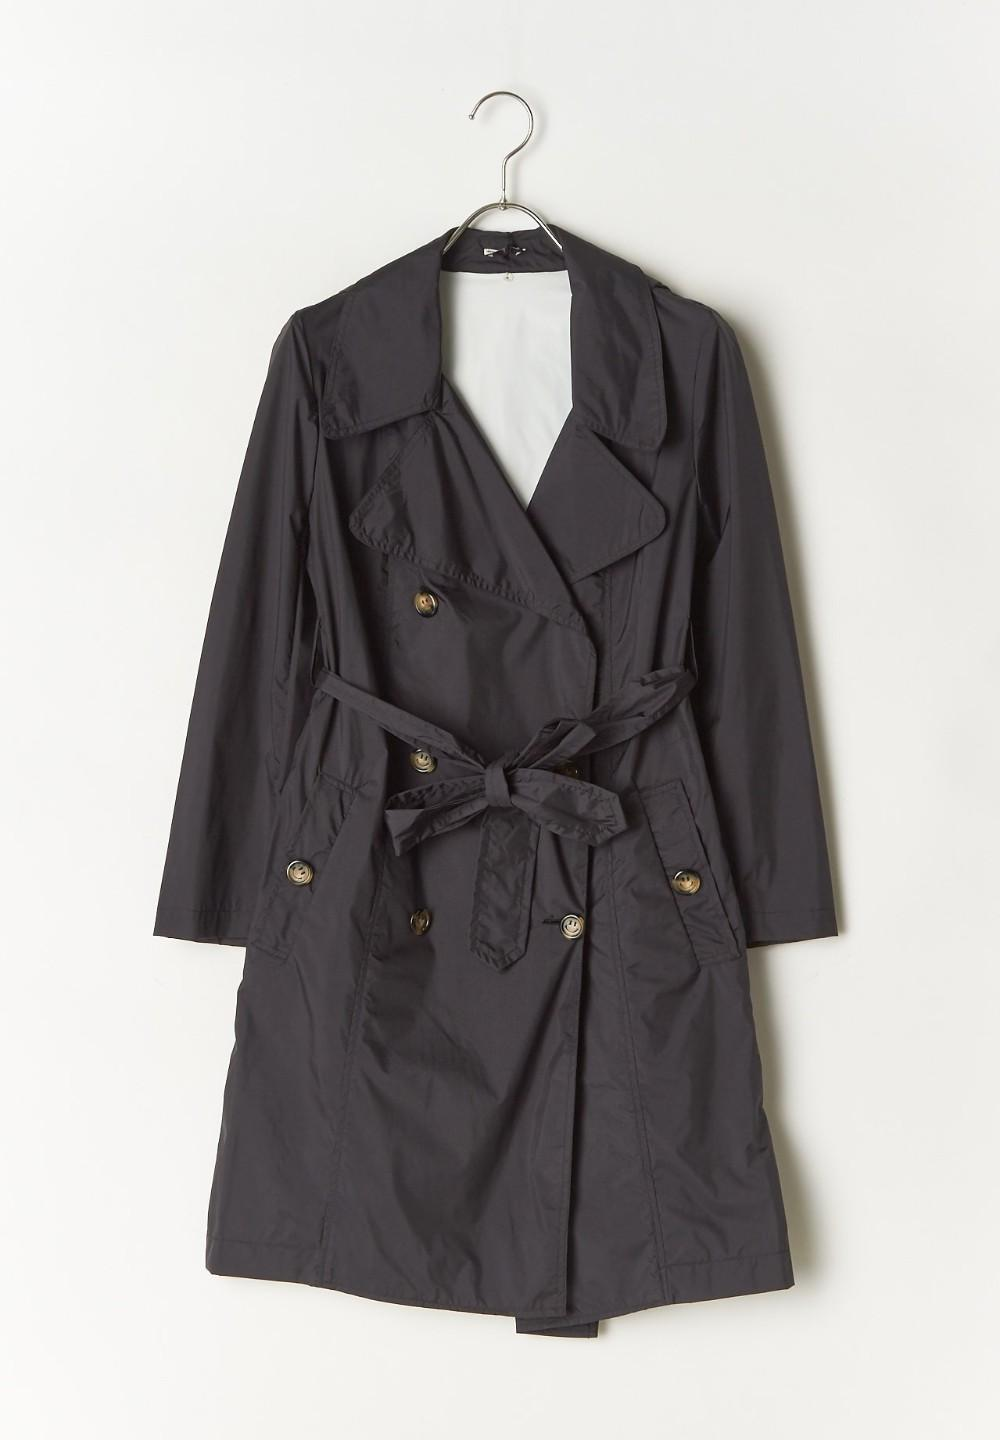 PICCADILLY BLACK - #1